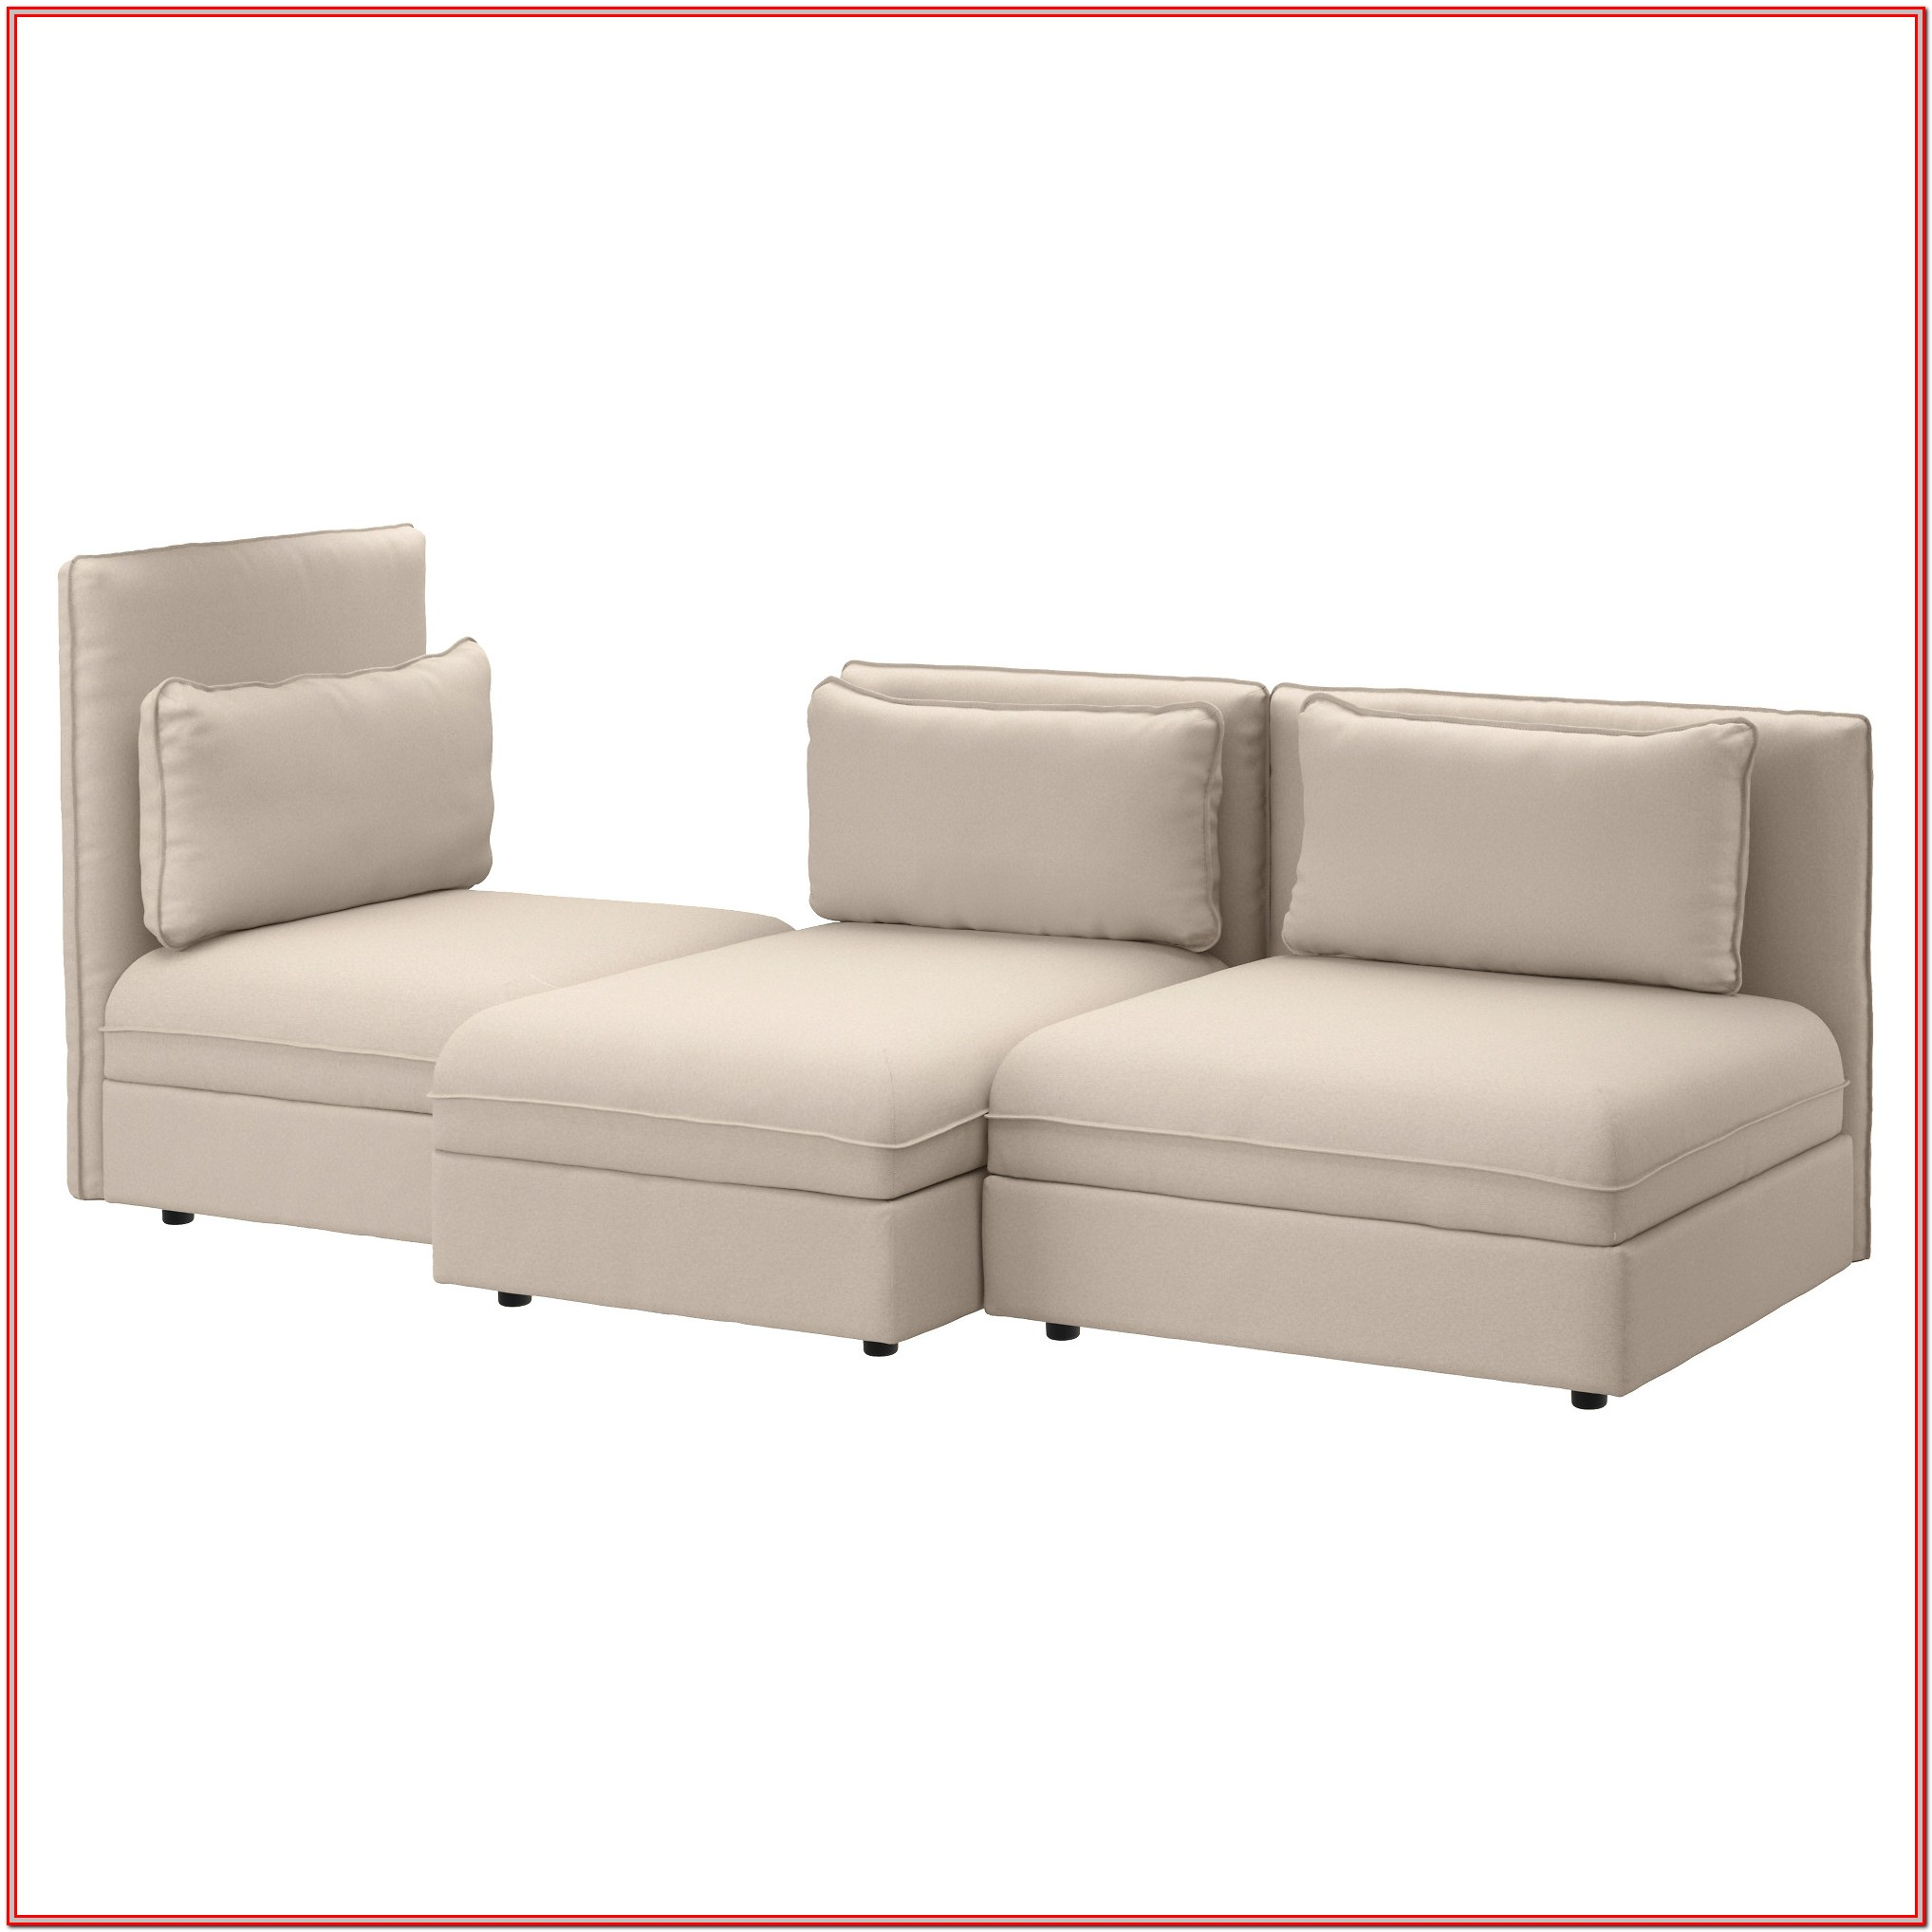 L Shaped Sleeper Sofa Ikea